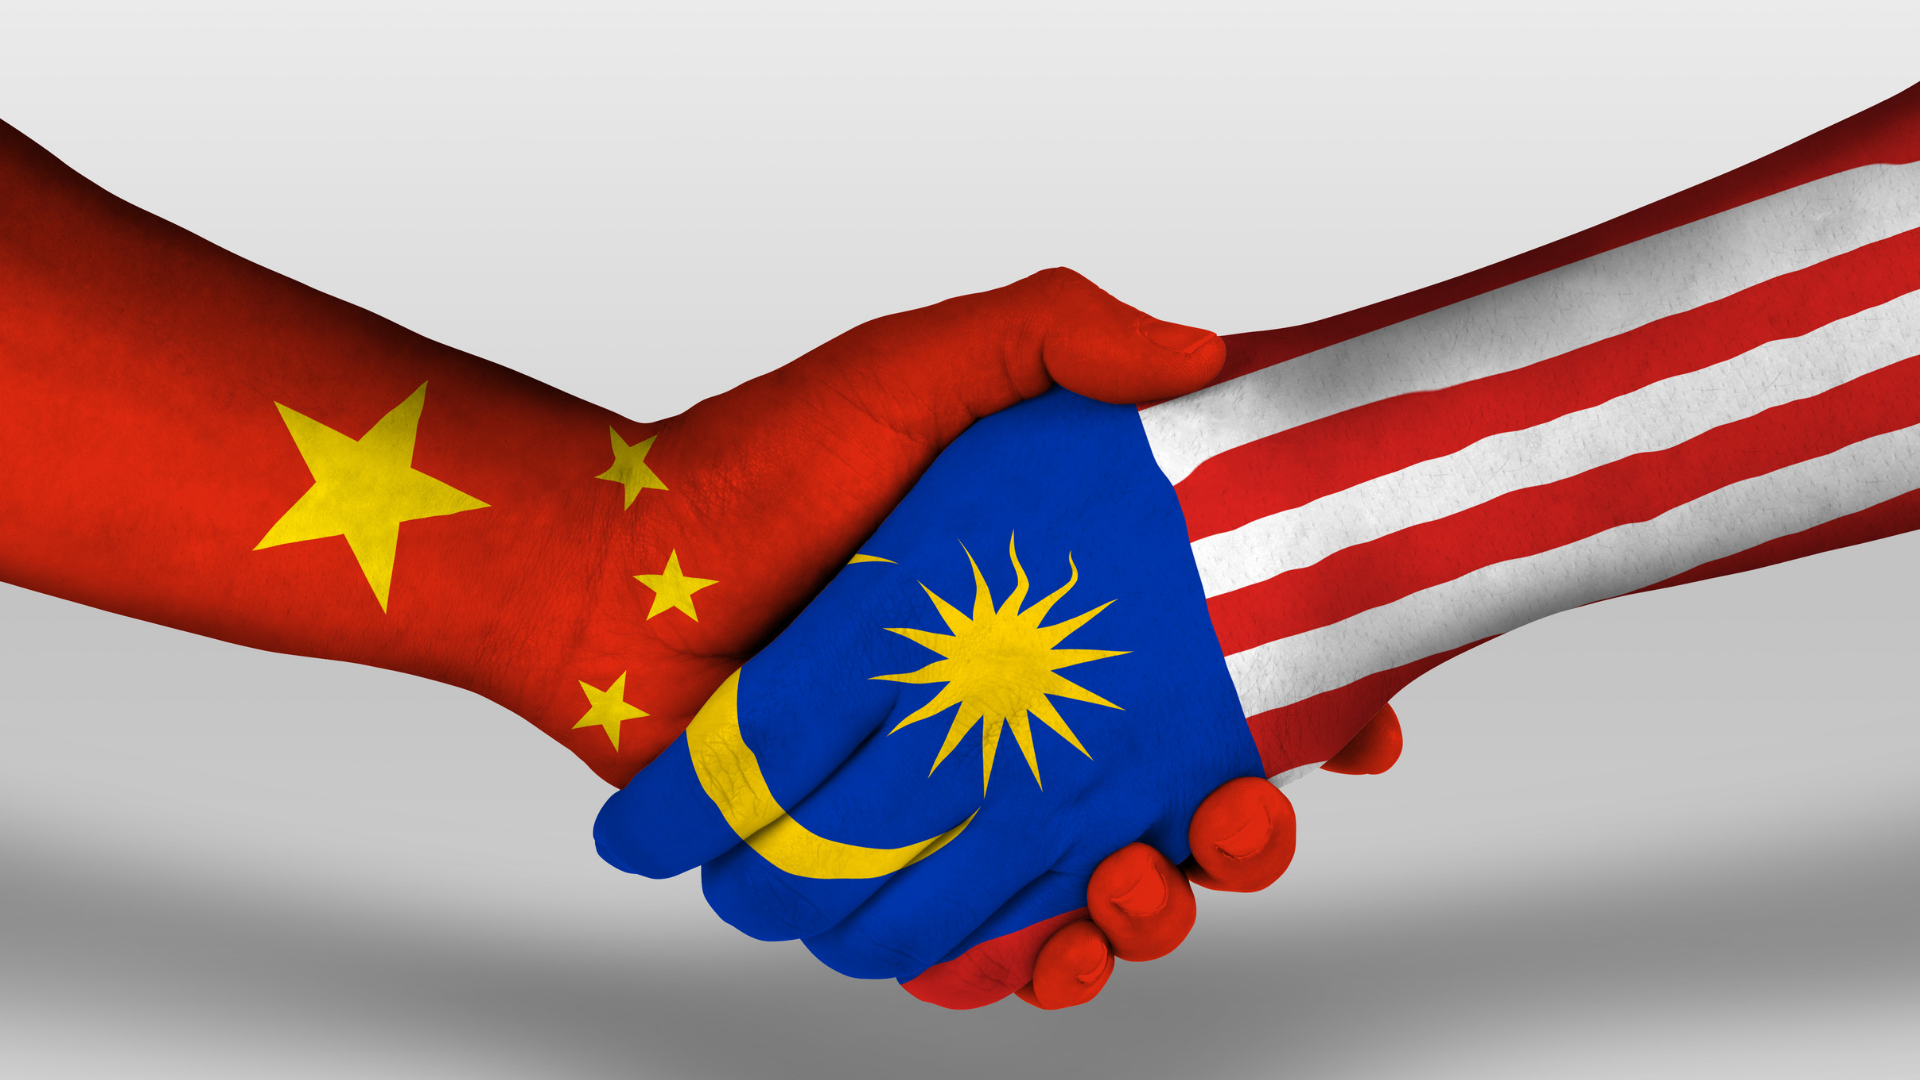 China's Plans in Malaysia: 5 Geopolitical Effects You Need to Know